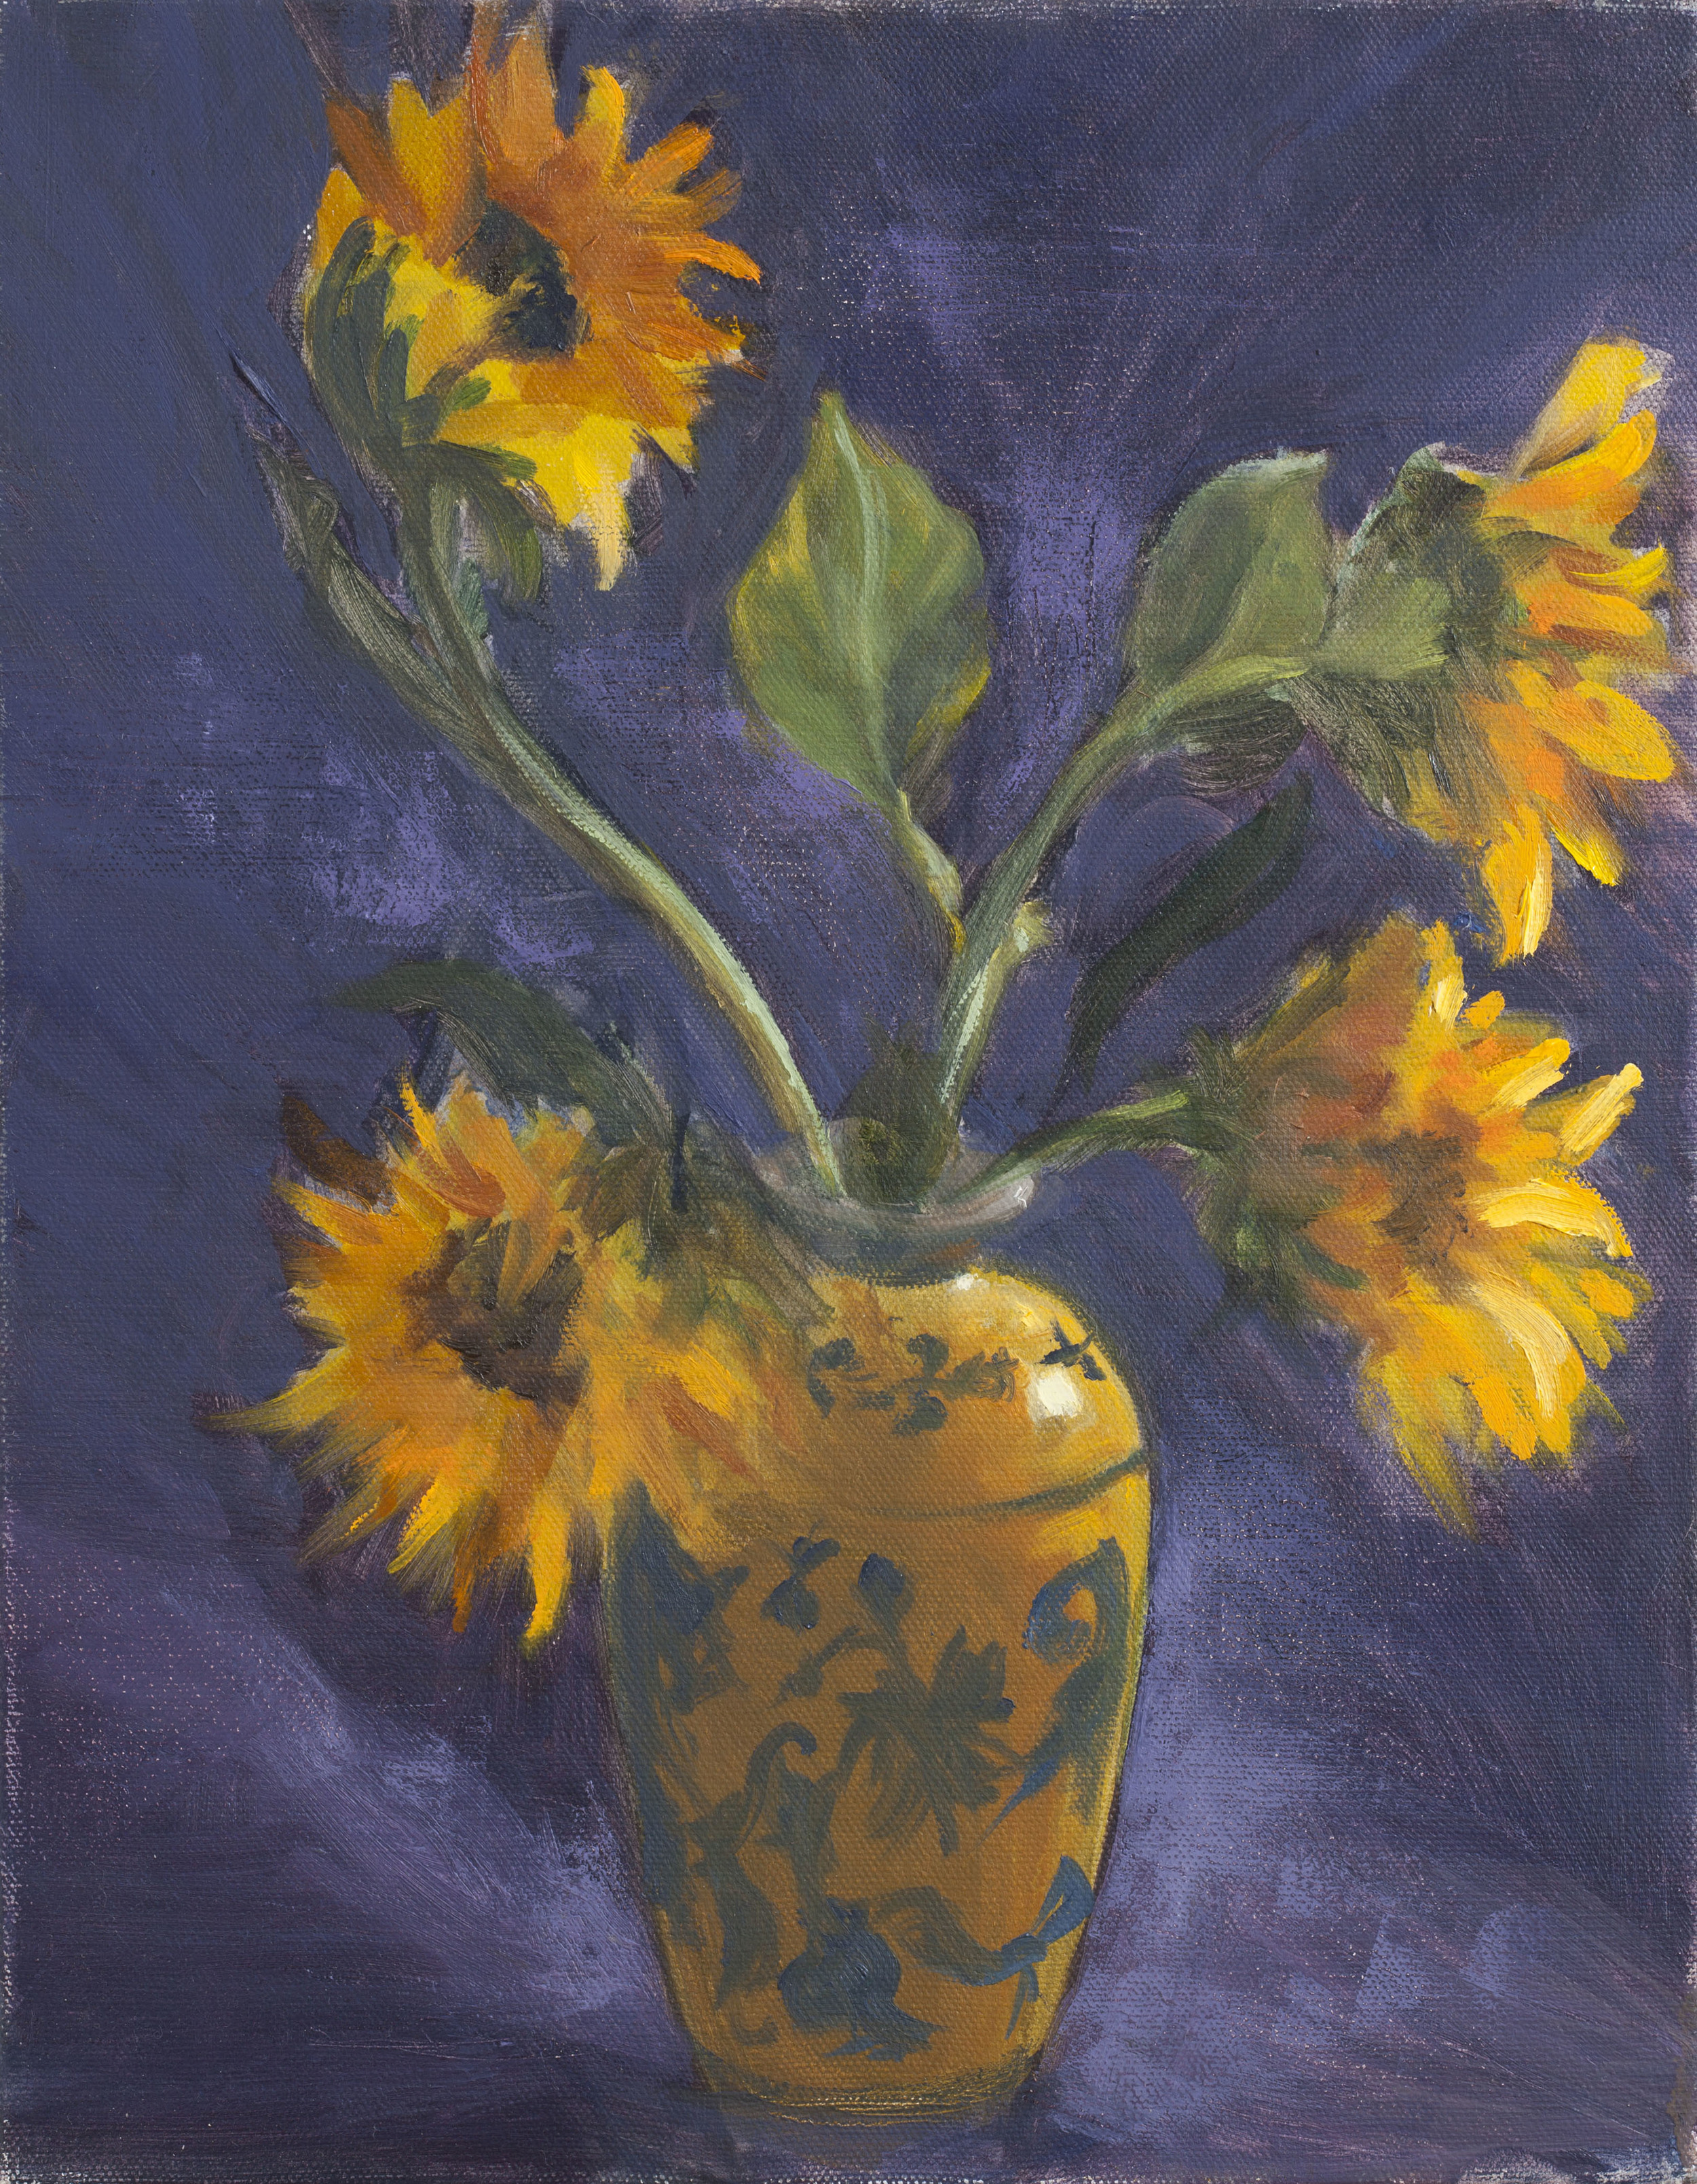 Sunflowers15067.jpg